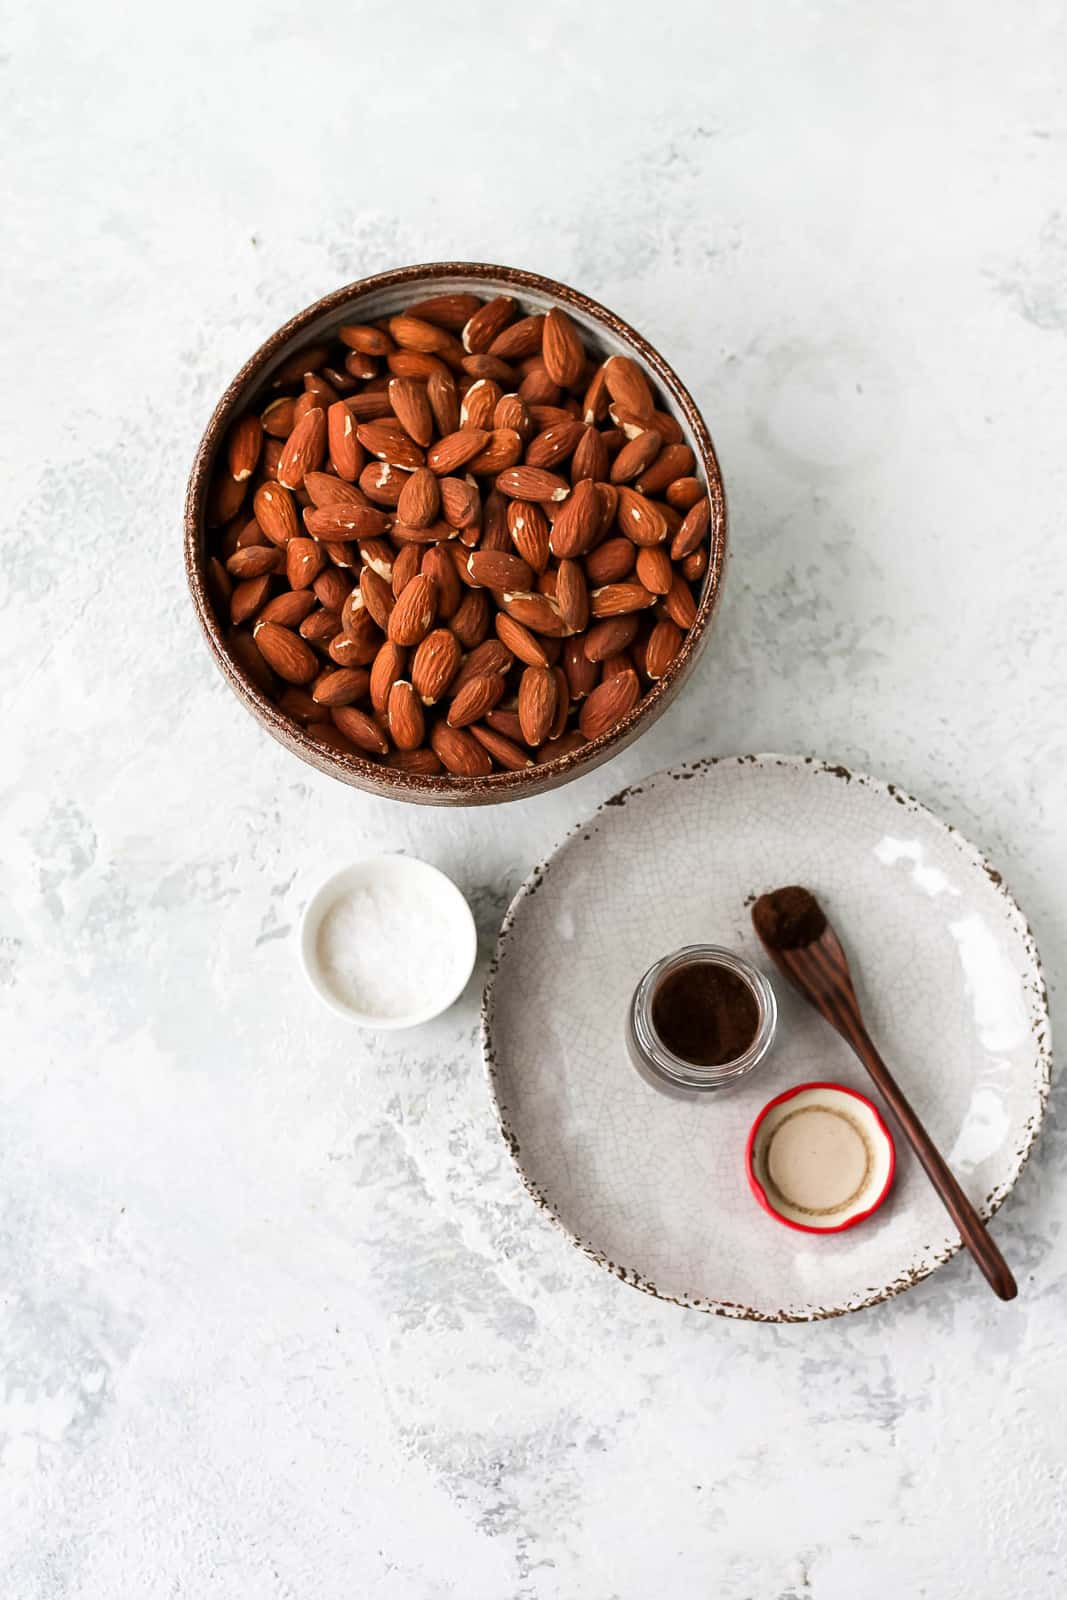 a bowl of almonds and a plate with a little jar of vanilla powder on a wooden spoon